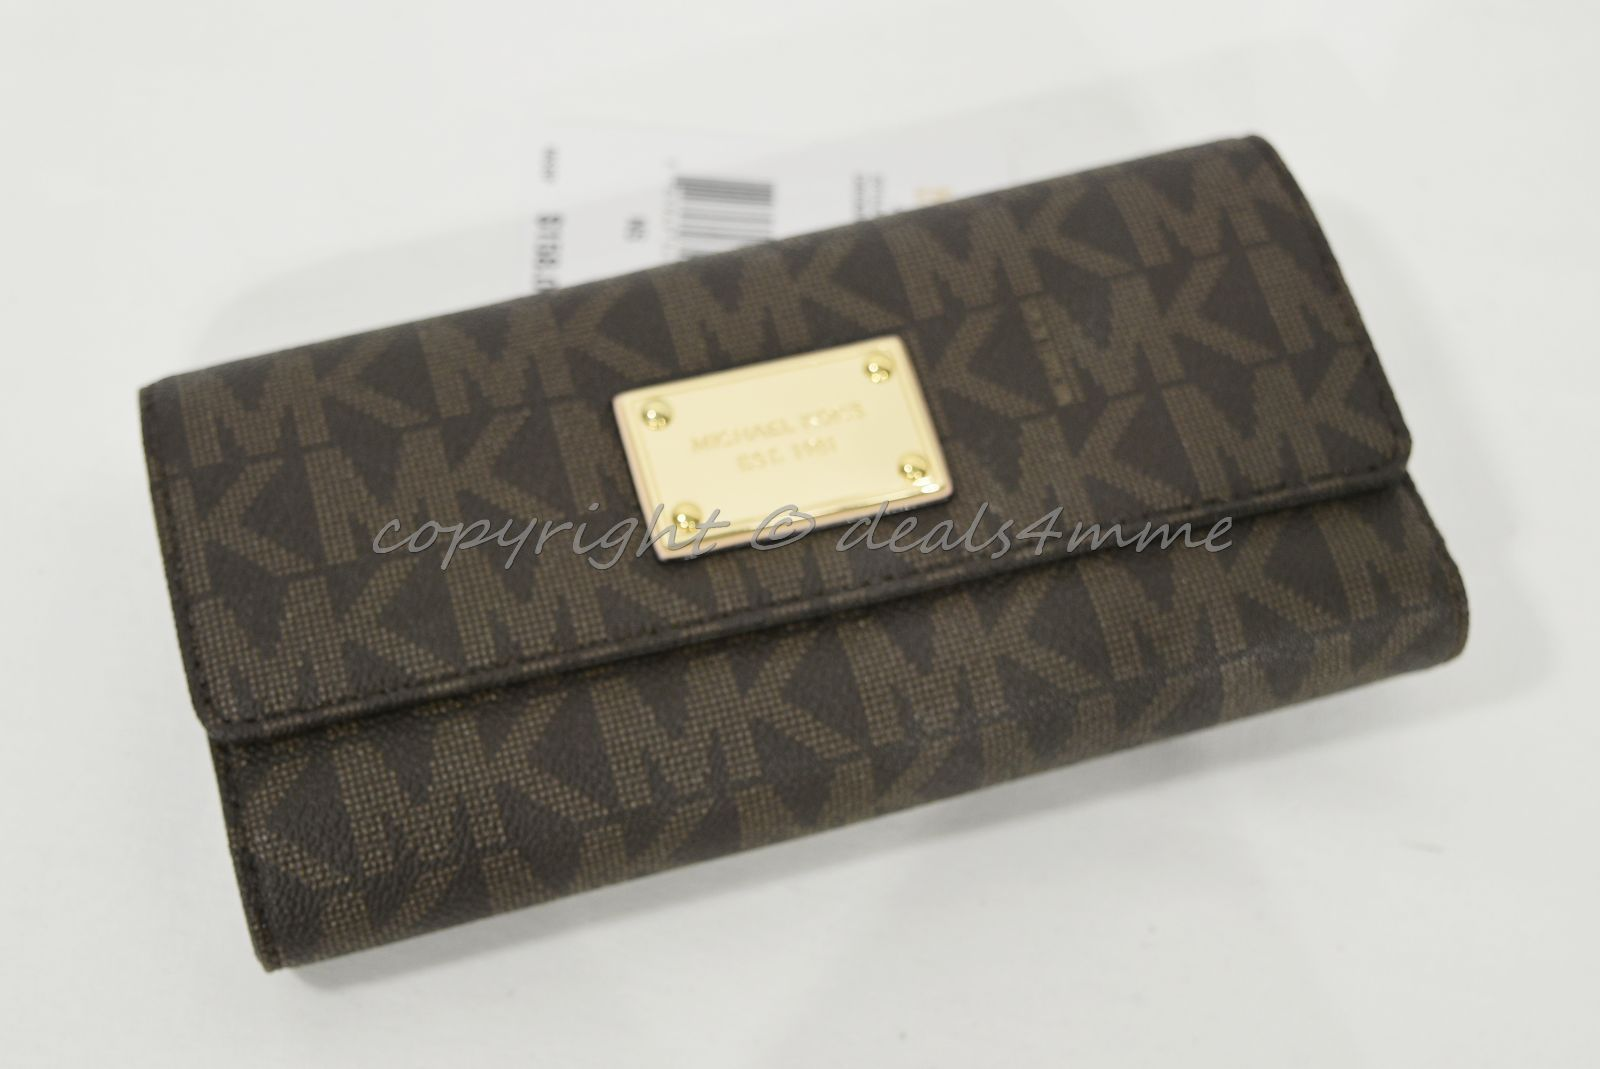 9a7f4f68f017 NWT Michael Kors Jet Set Checkbook Wallet in and 50 similar items. S l1600